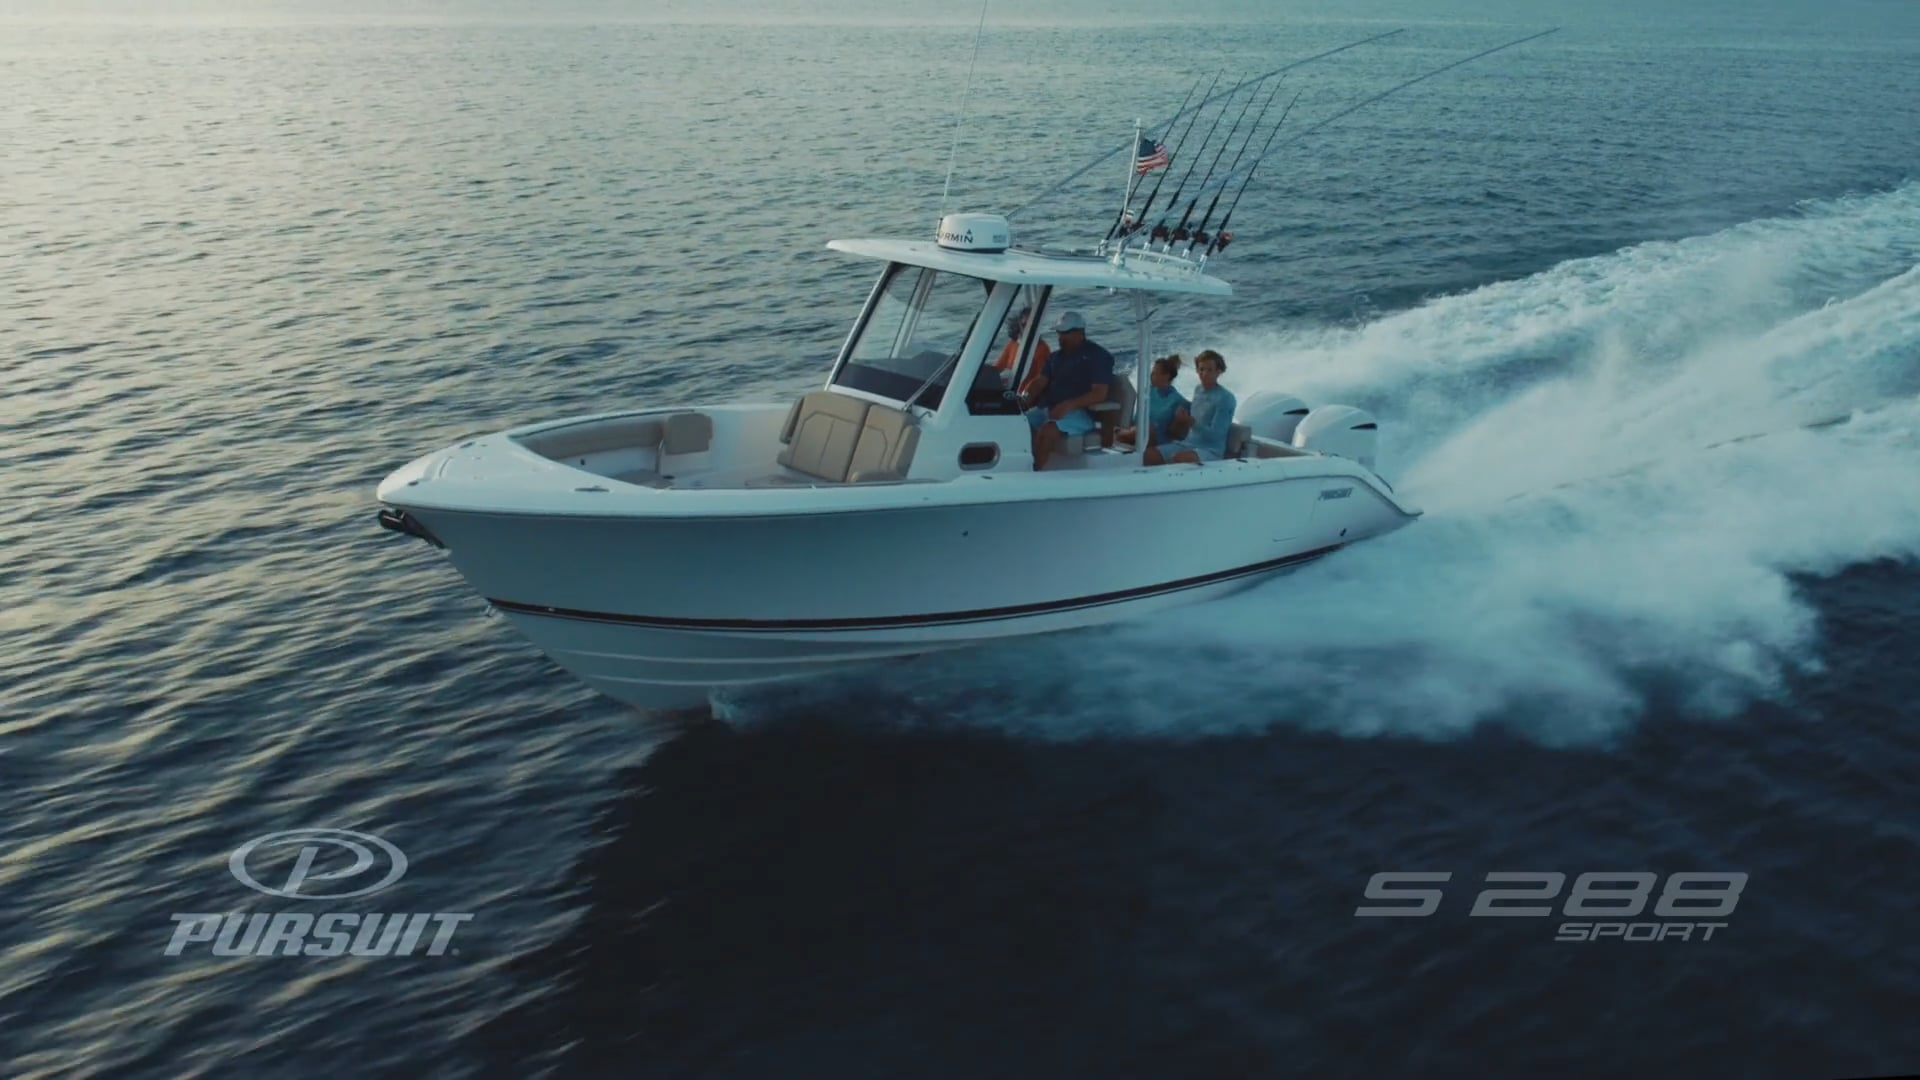 Aerial profile view of S 288 Sport boat running left.